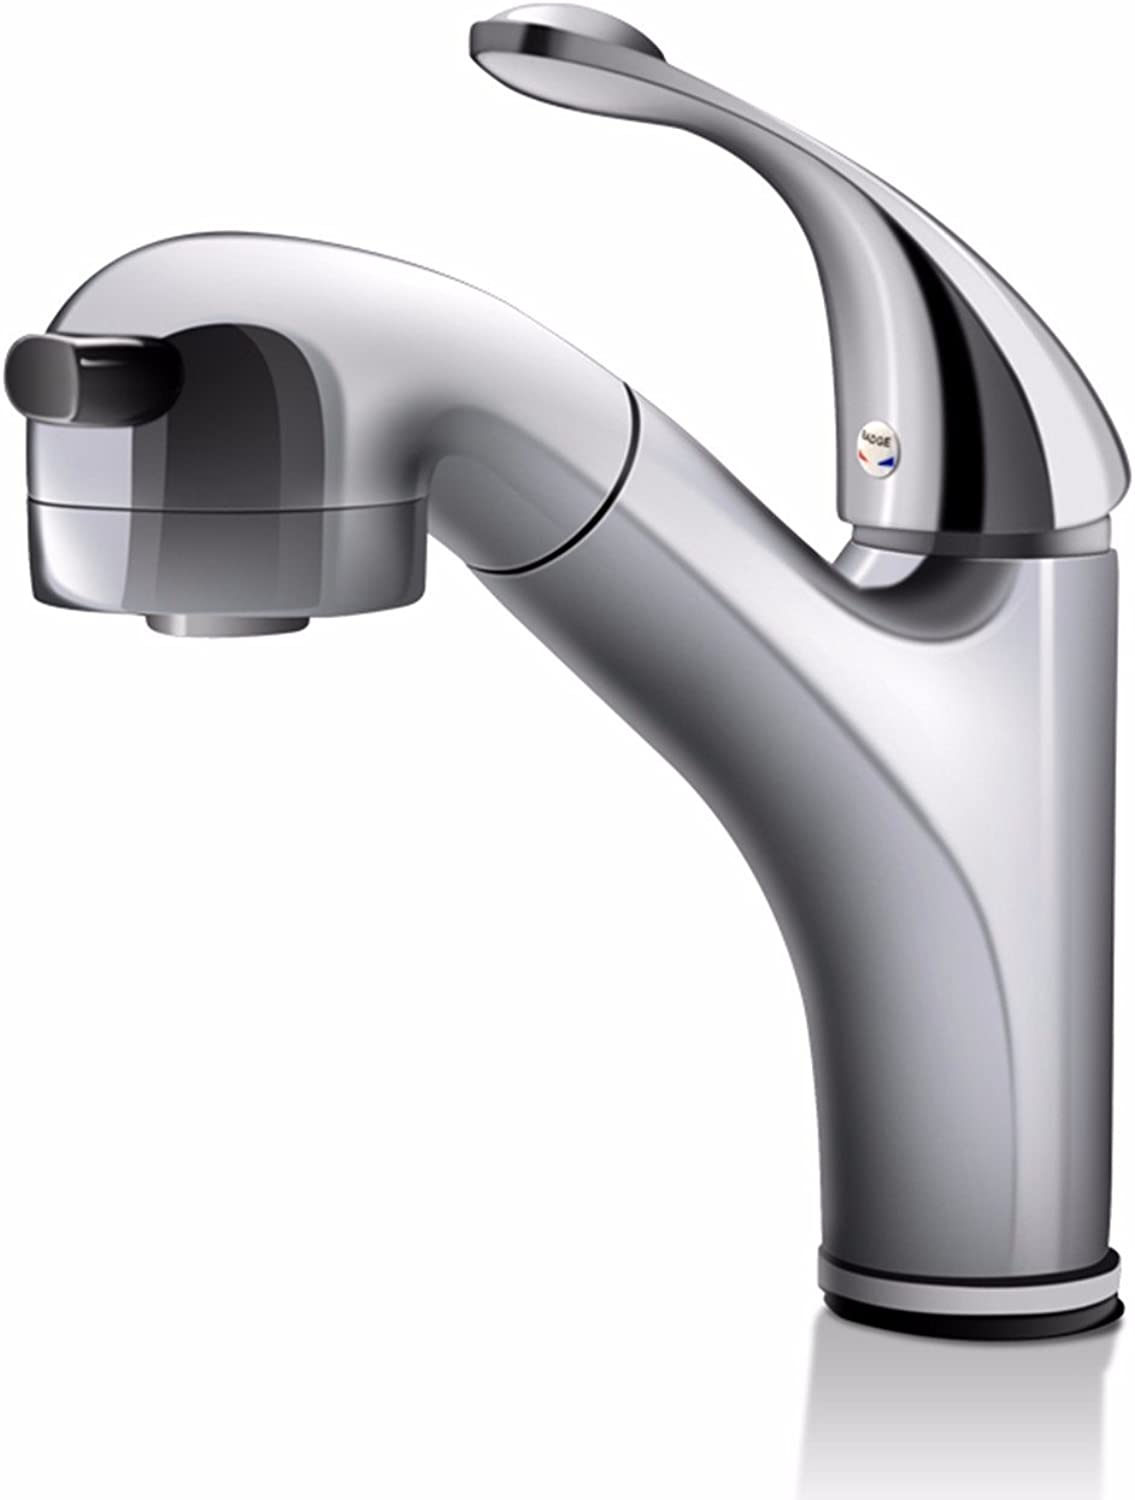 Hlluya Professional Sink Mixer Tap Kitchen Faucet Cold water faucet sink and faucet hot and cold water faucets